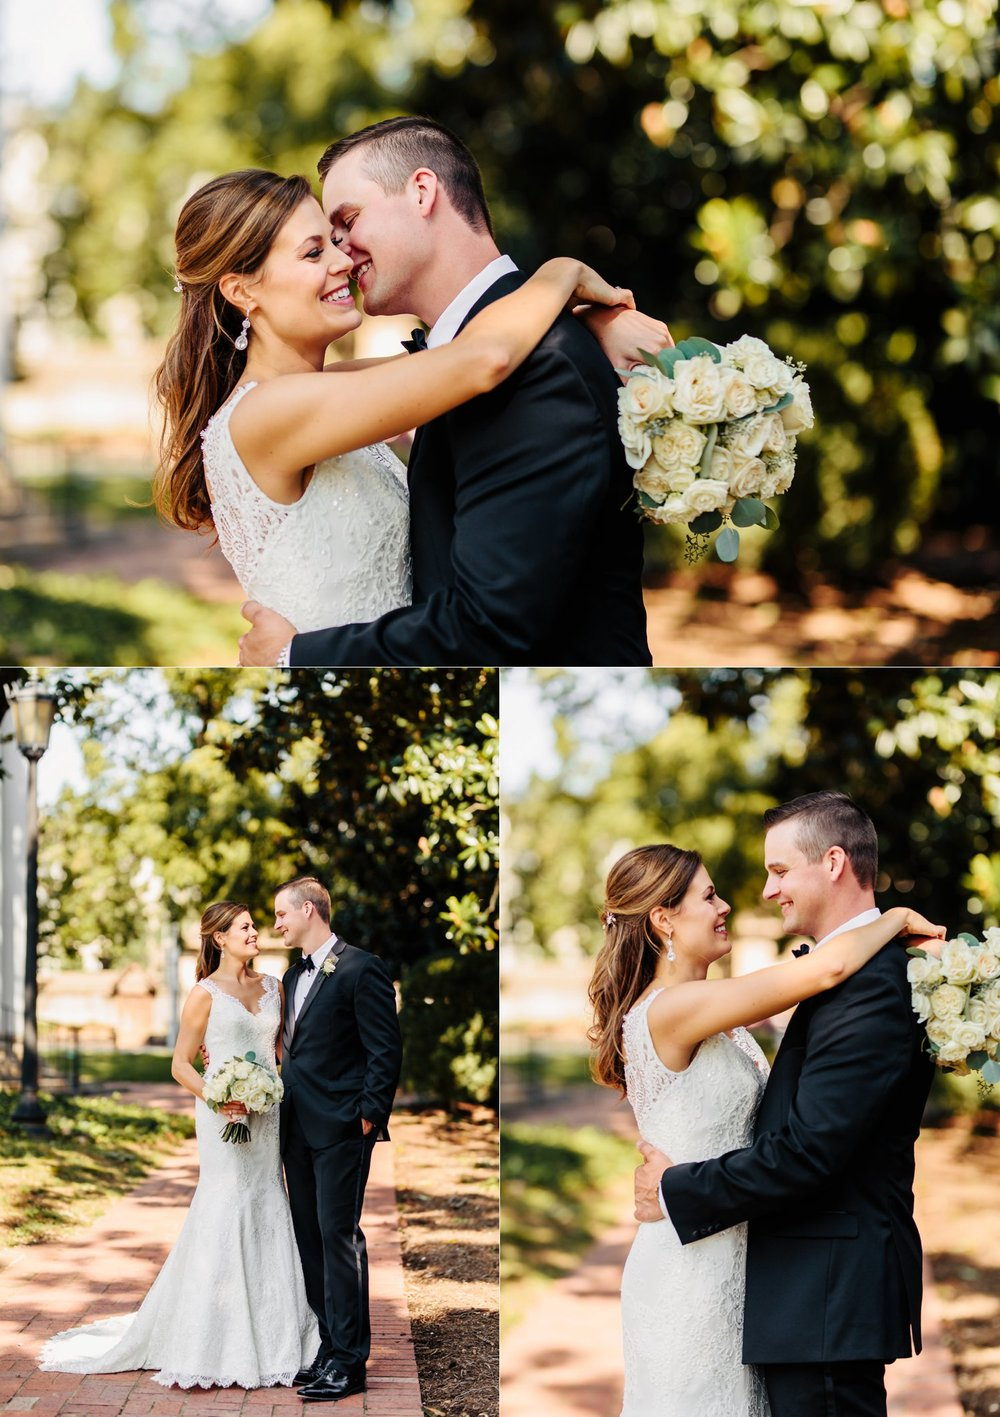 CK-Photo-Nashville-engagement-wedding-photographer-belle-meade-country-club